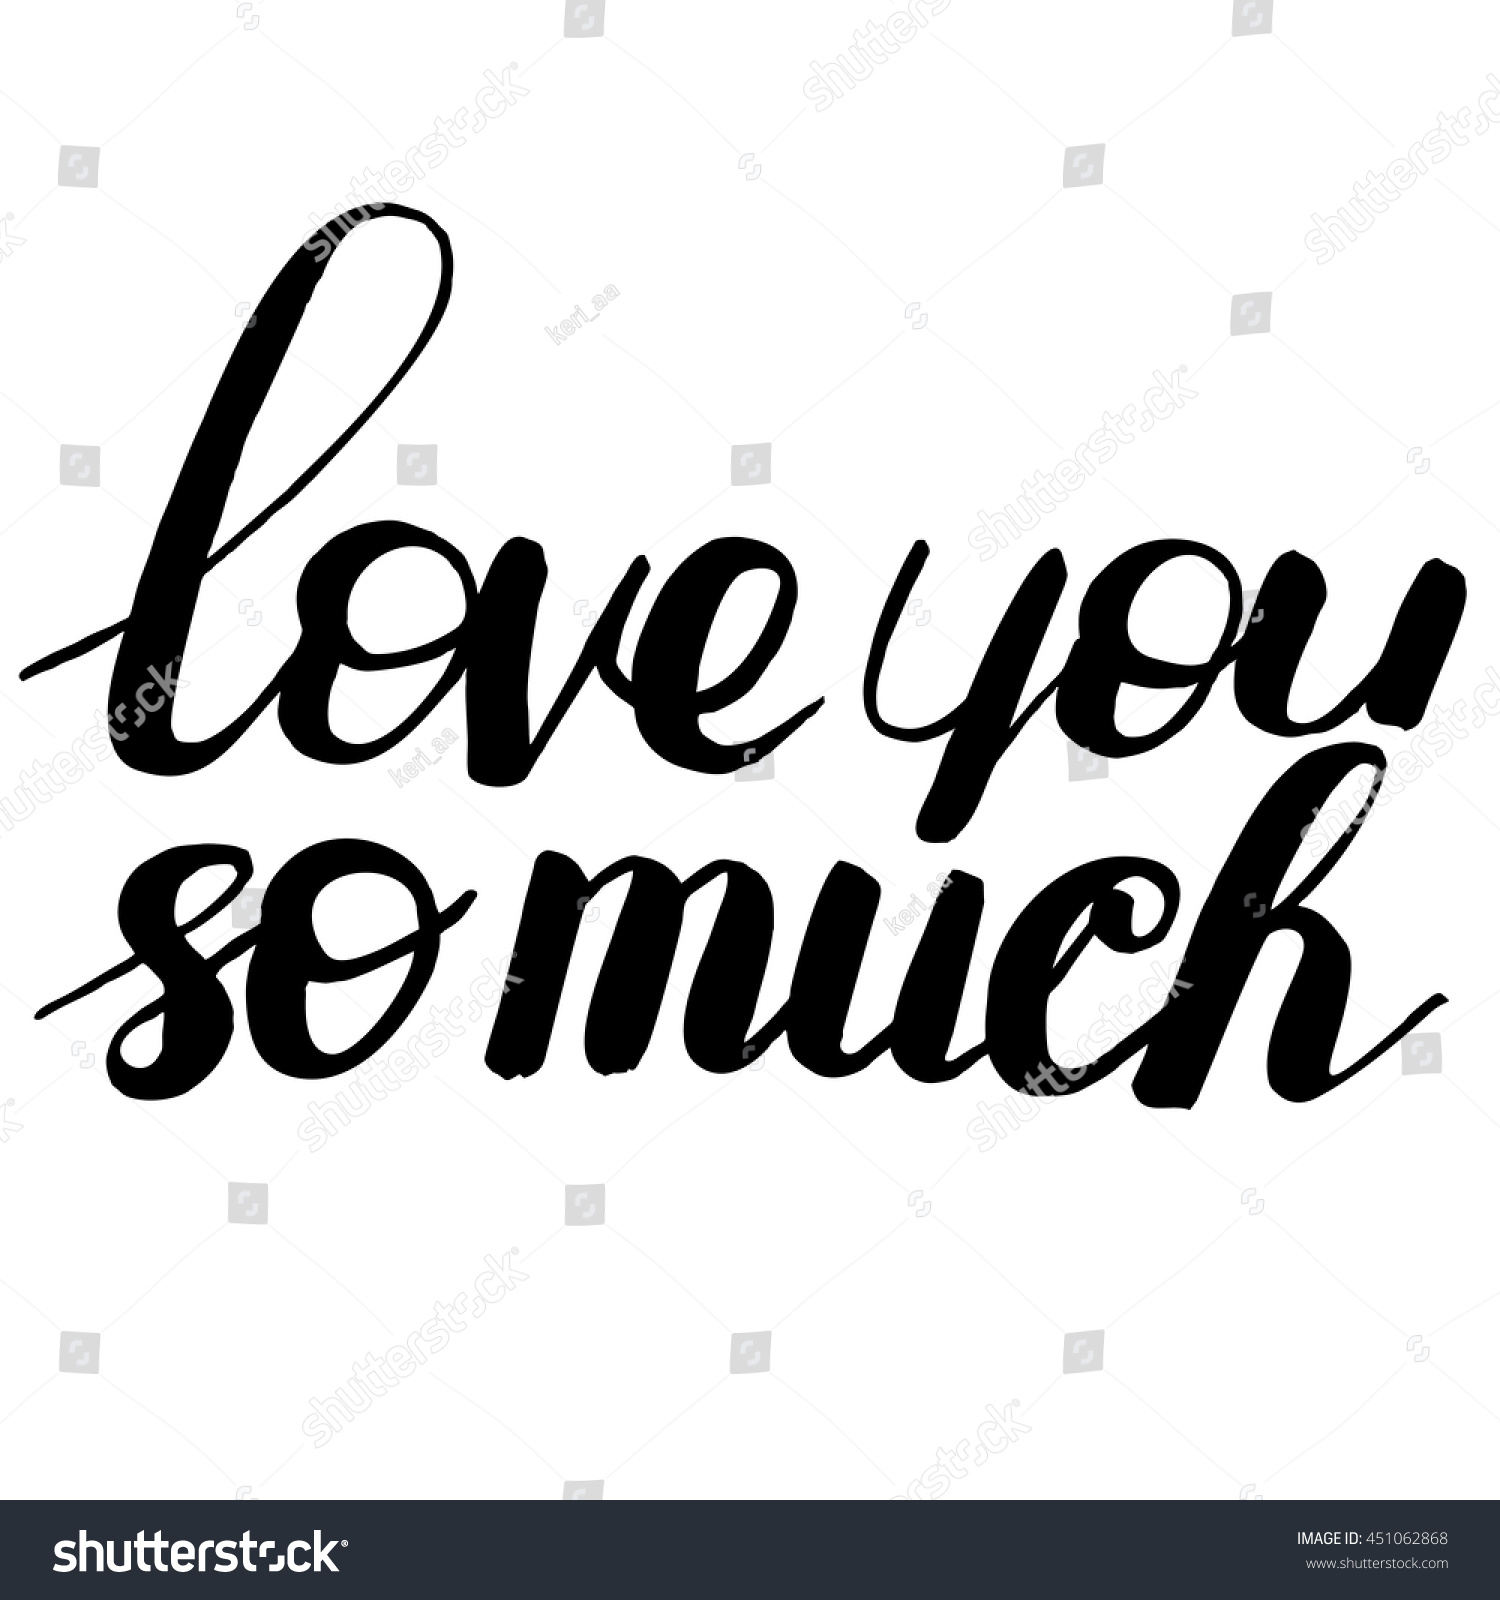 I Love You So Much Quotes Love You Much Quote Vector Illustration Stock Vector 451062868